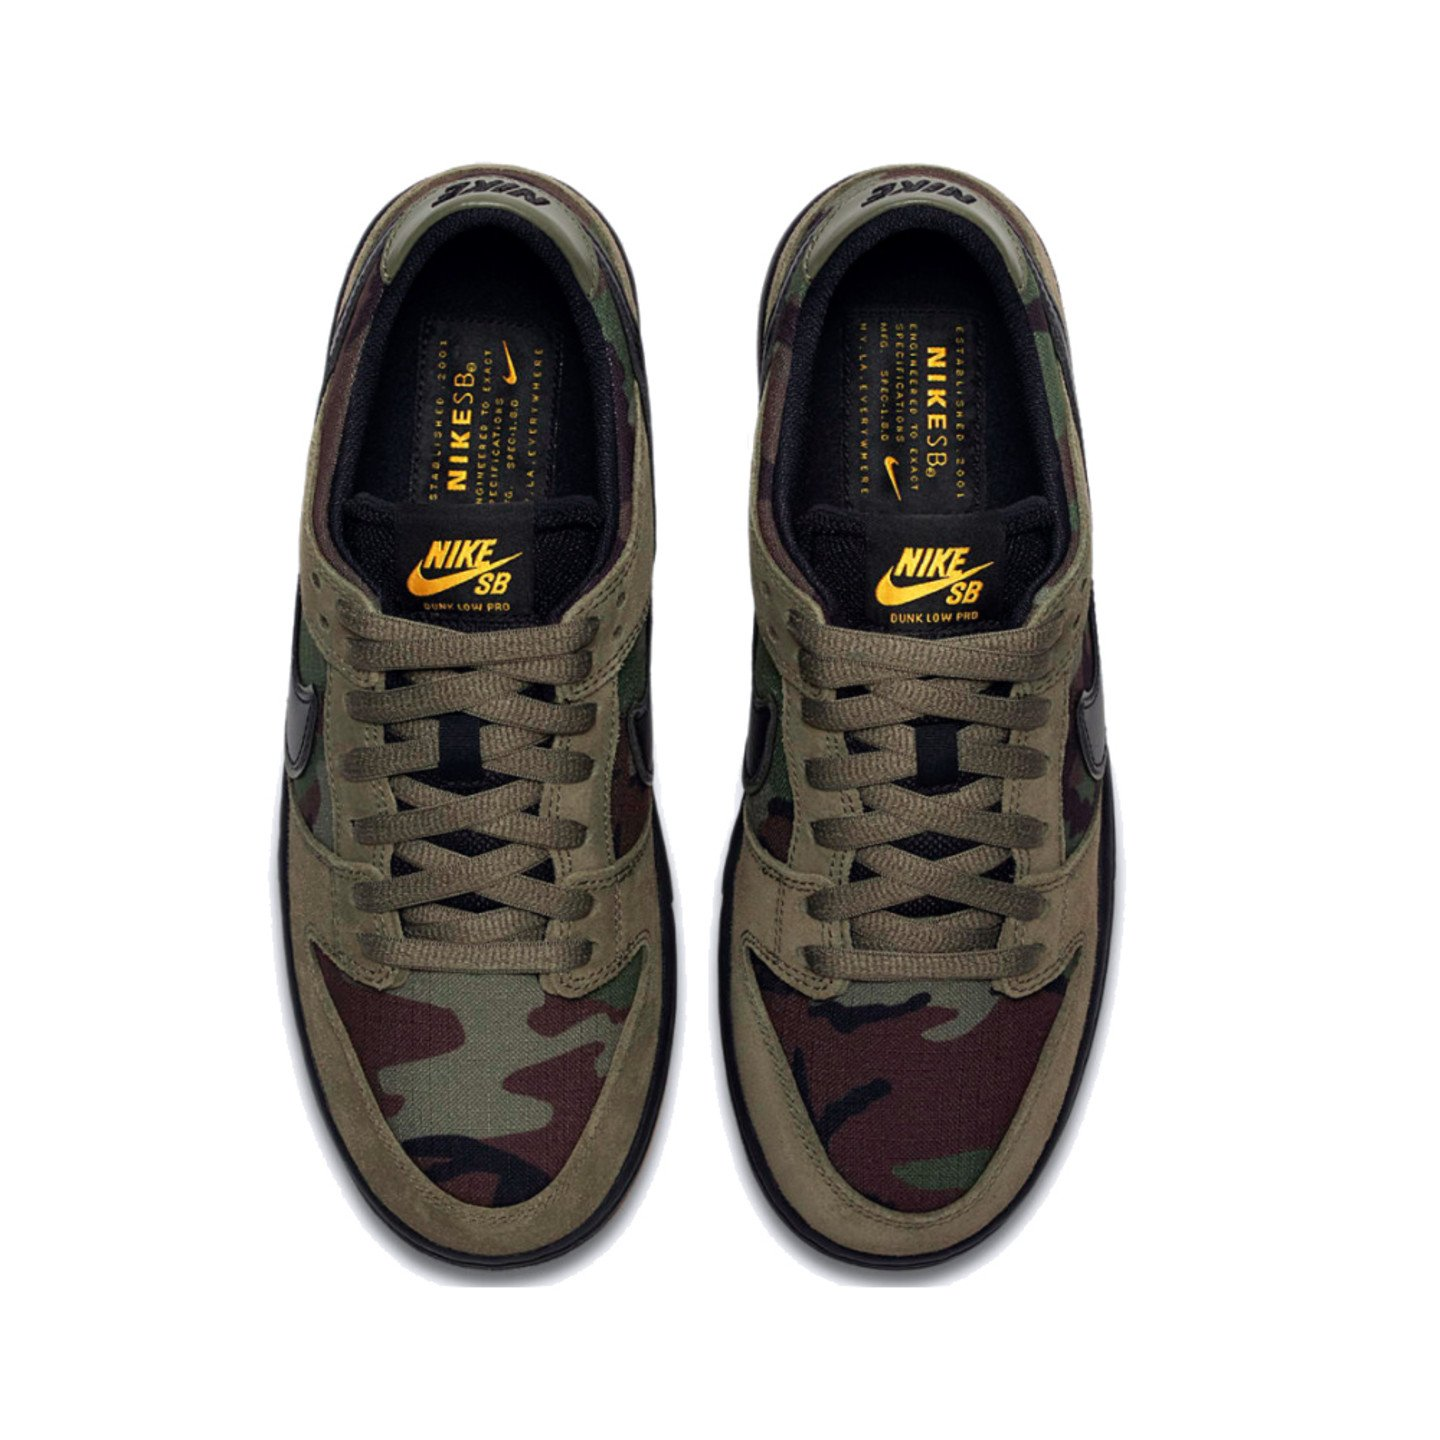 Nike SB Zoom Dunk Low Pro 'Camouflage' Medium Olive / Black / Gum 854866-209